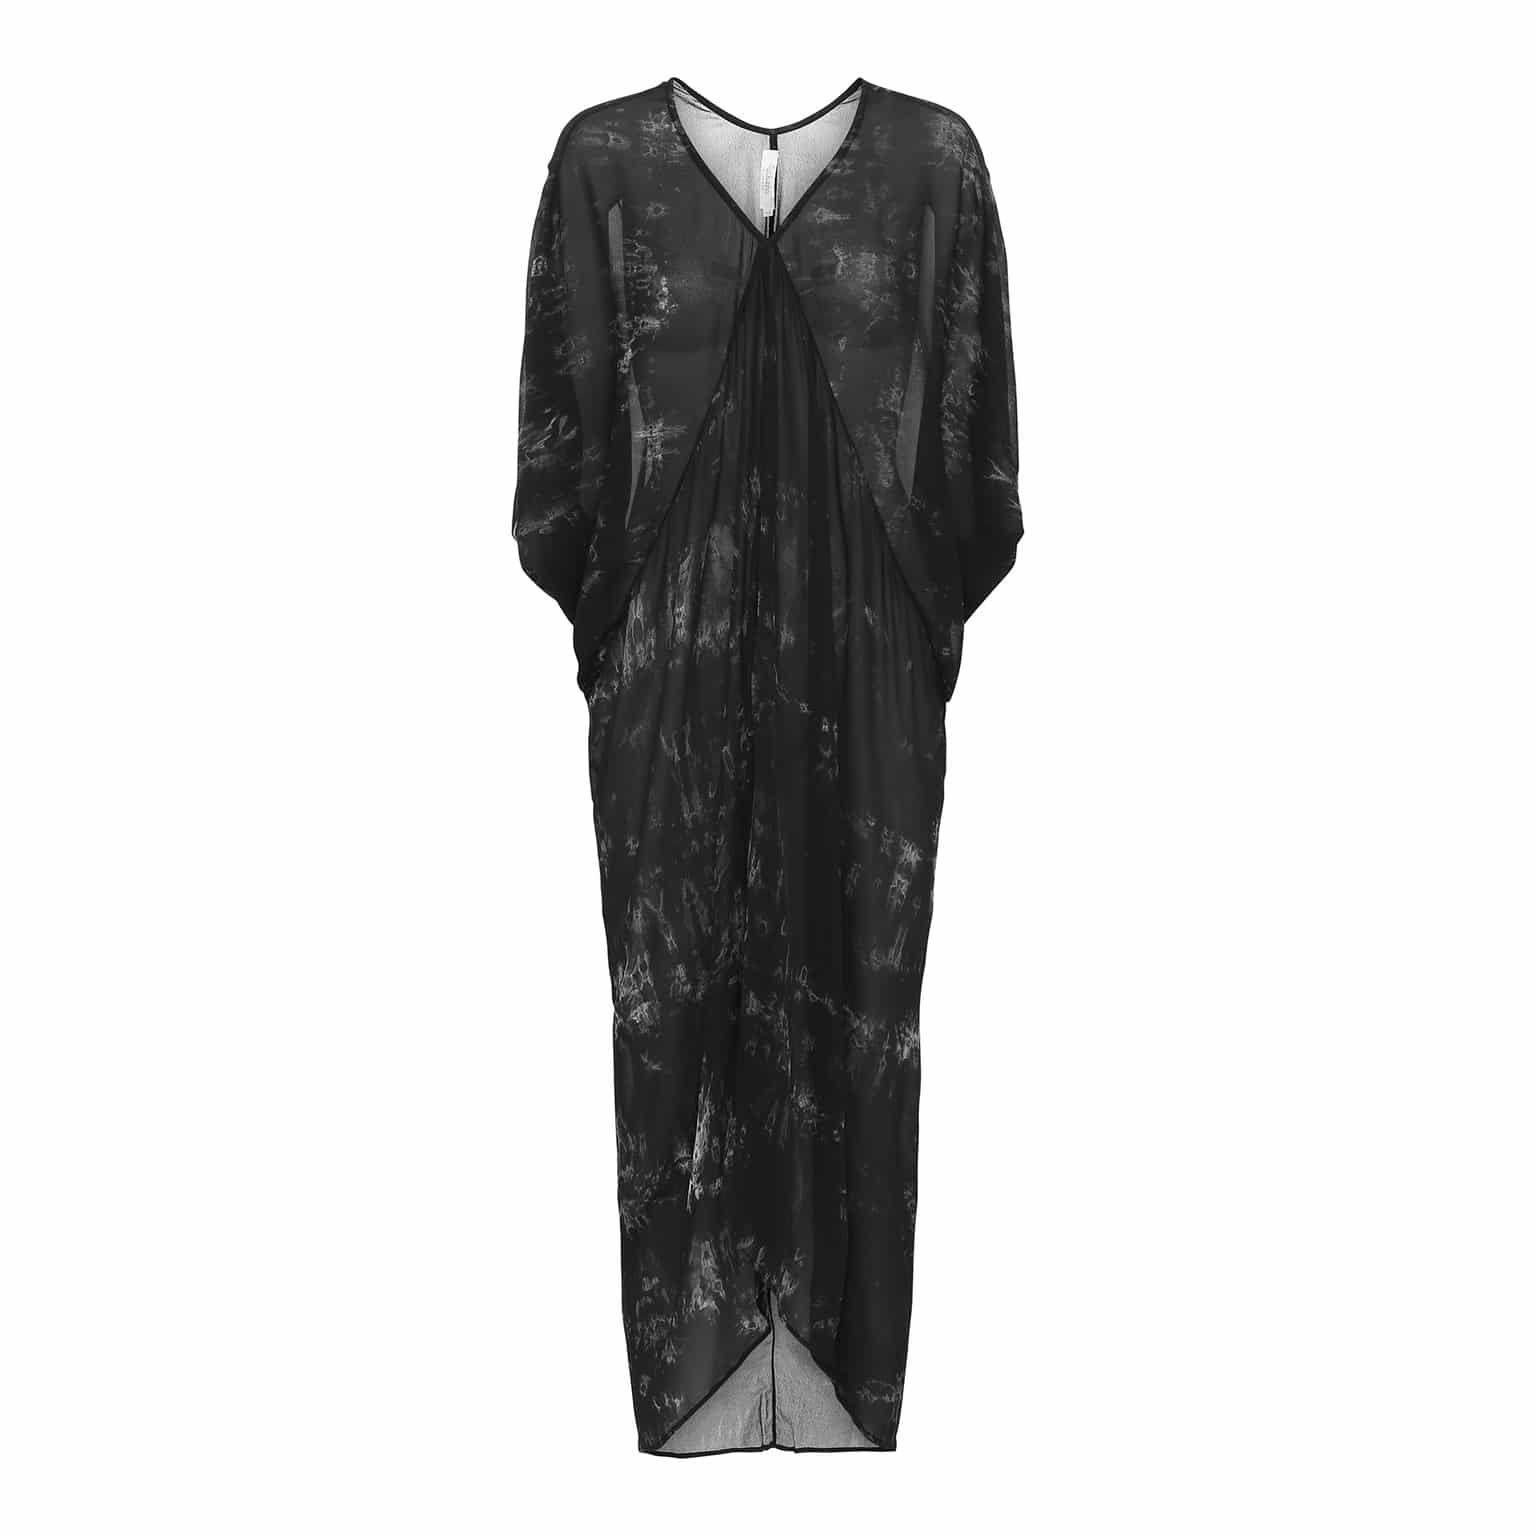 Combo Asymmetric Dress Her Rabens Køb Black Saloner Wave XAqnxZw47